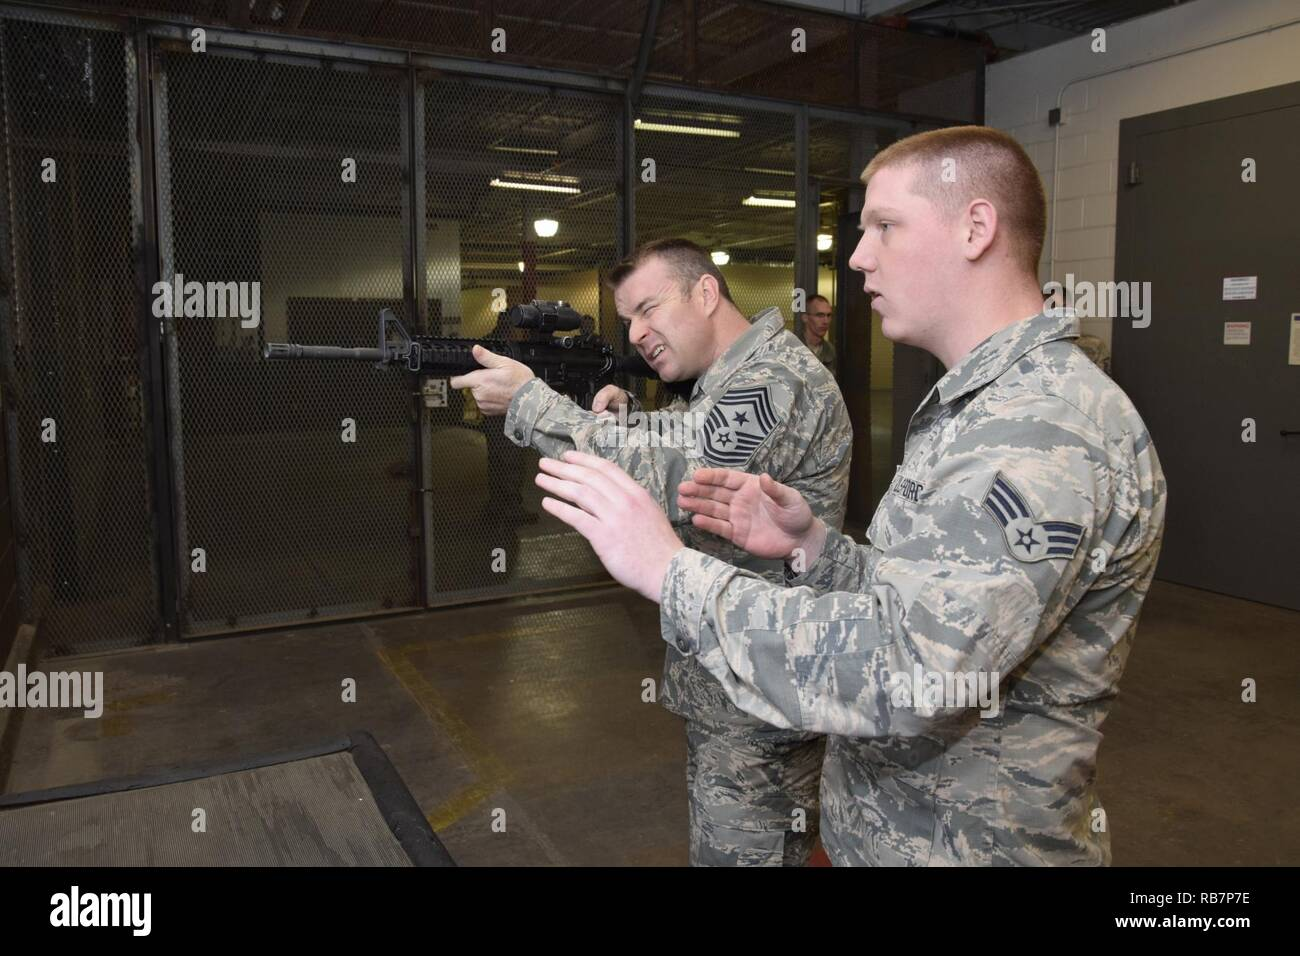 Air Force Sustainment Center Command Chief Master Sgt Gary S Sharp Holds An M4 Rifle While